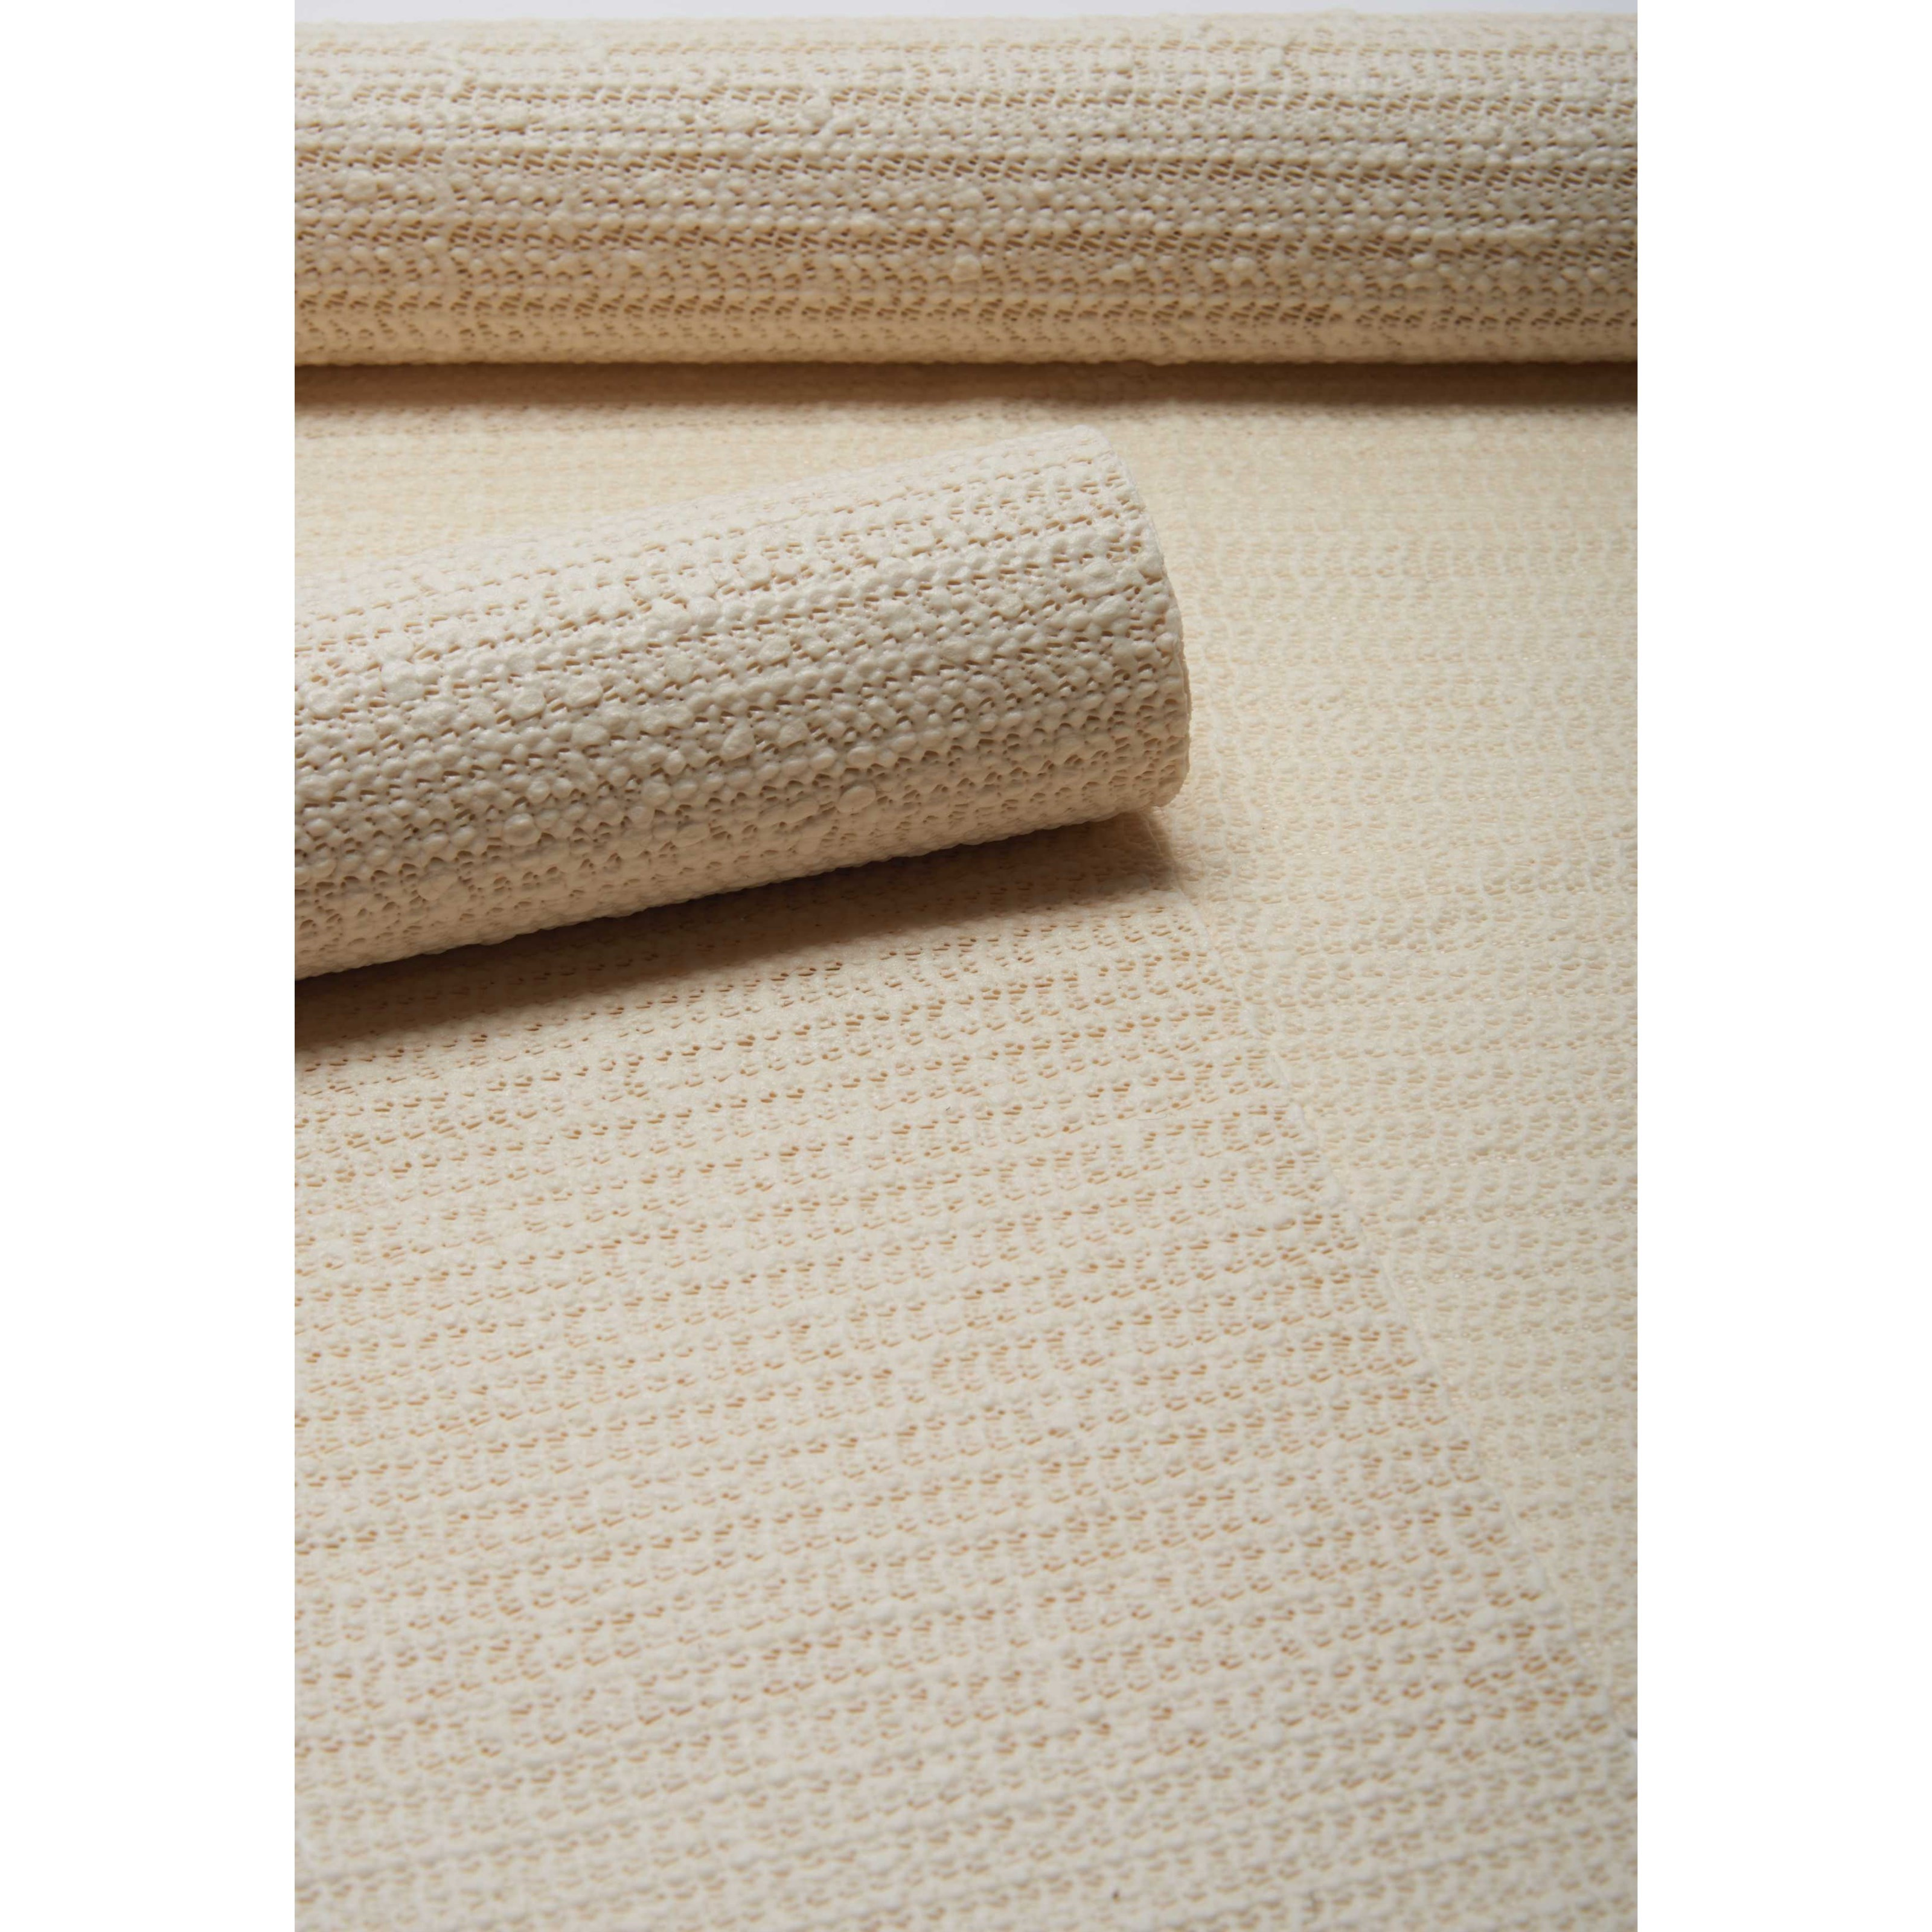 "Shiftloc Pad         2'6"" x 4'2""  Rug by Nourison at Home Collections Furniture"